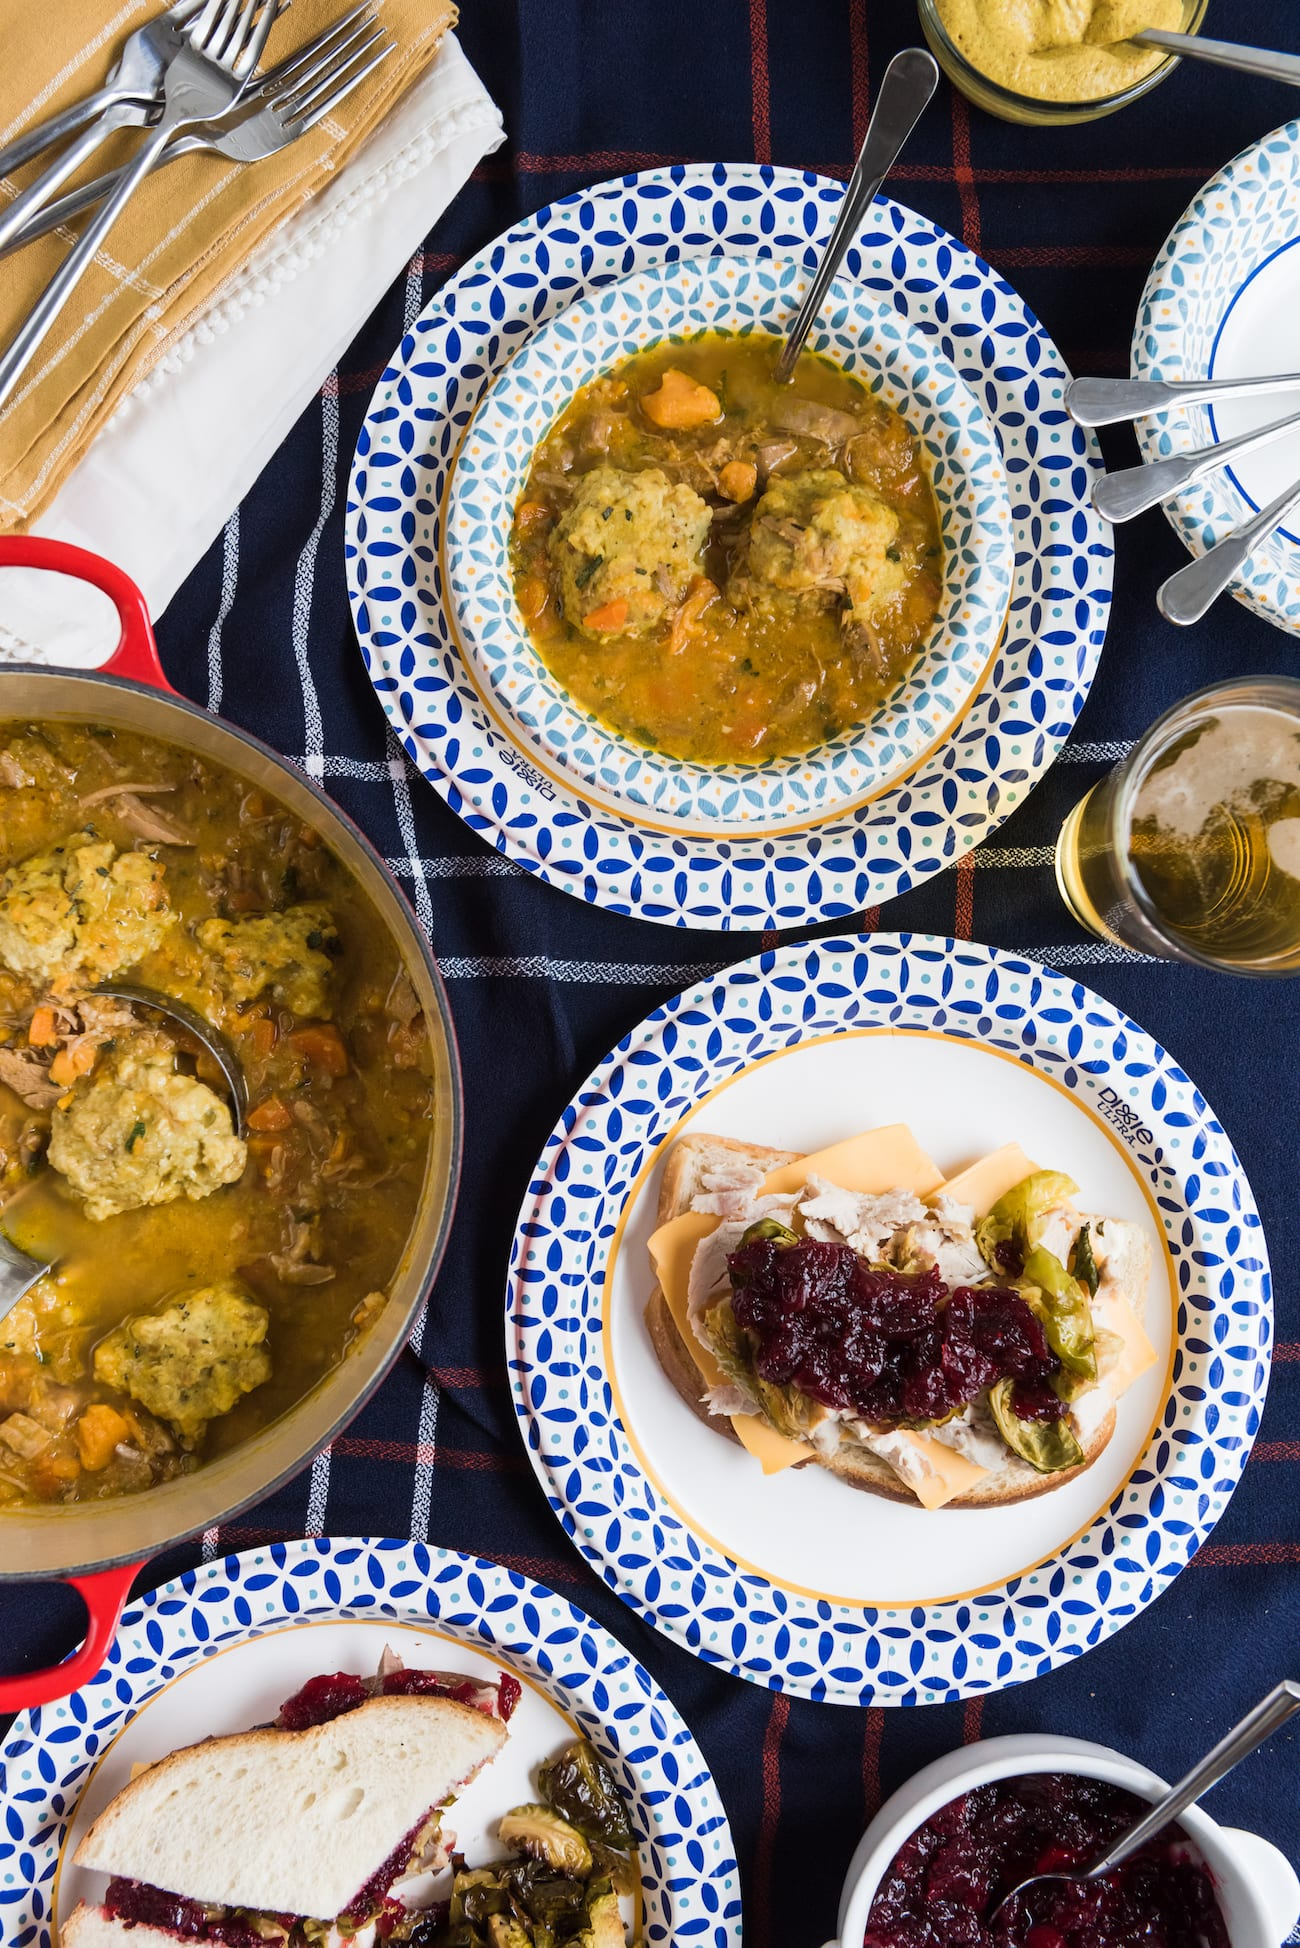 Hosting Friendsgiving with the Best Thanksgiving Leftovers Recipes like leftover stuffing dumplings from entertaining blog @cydconverse